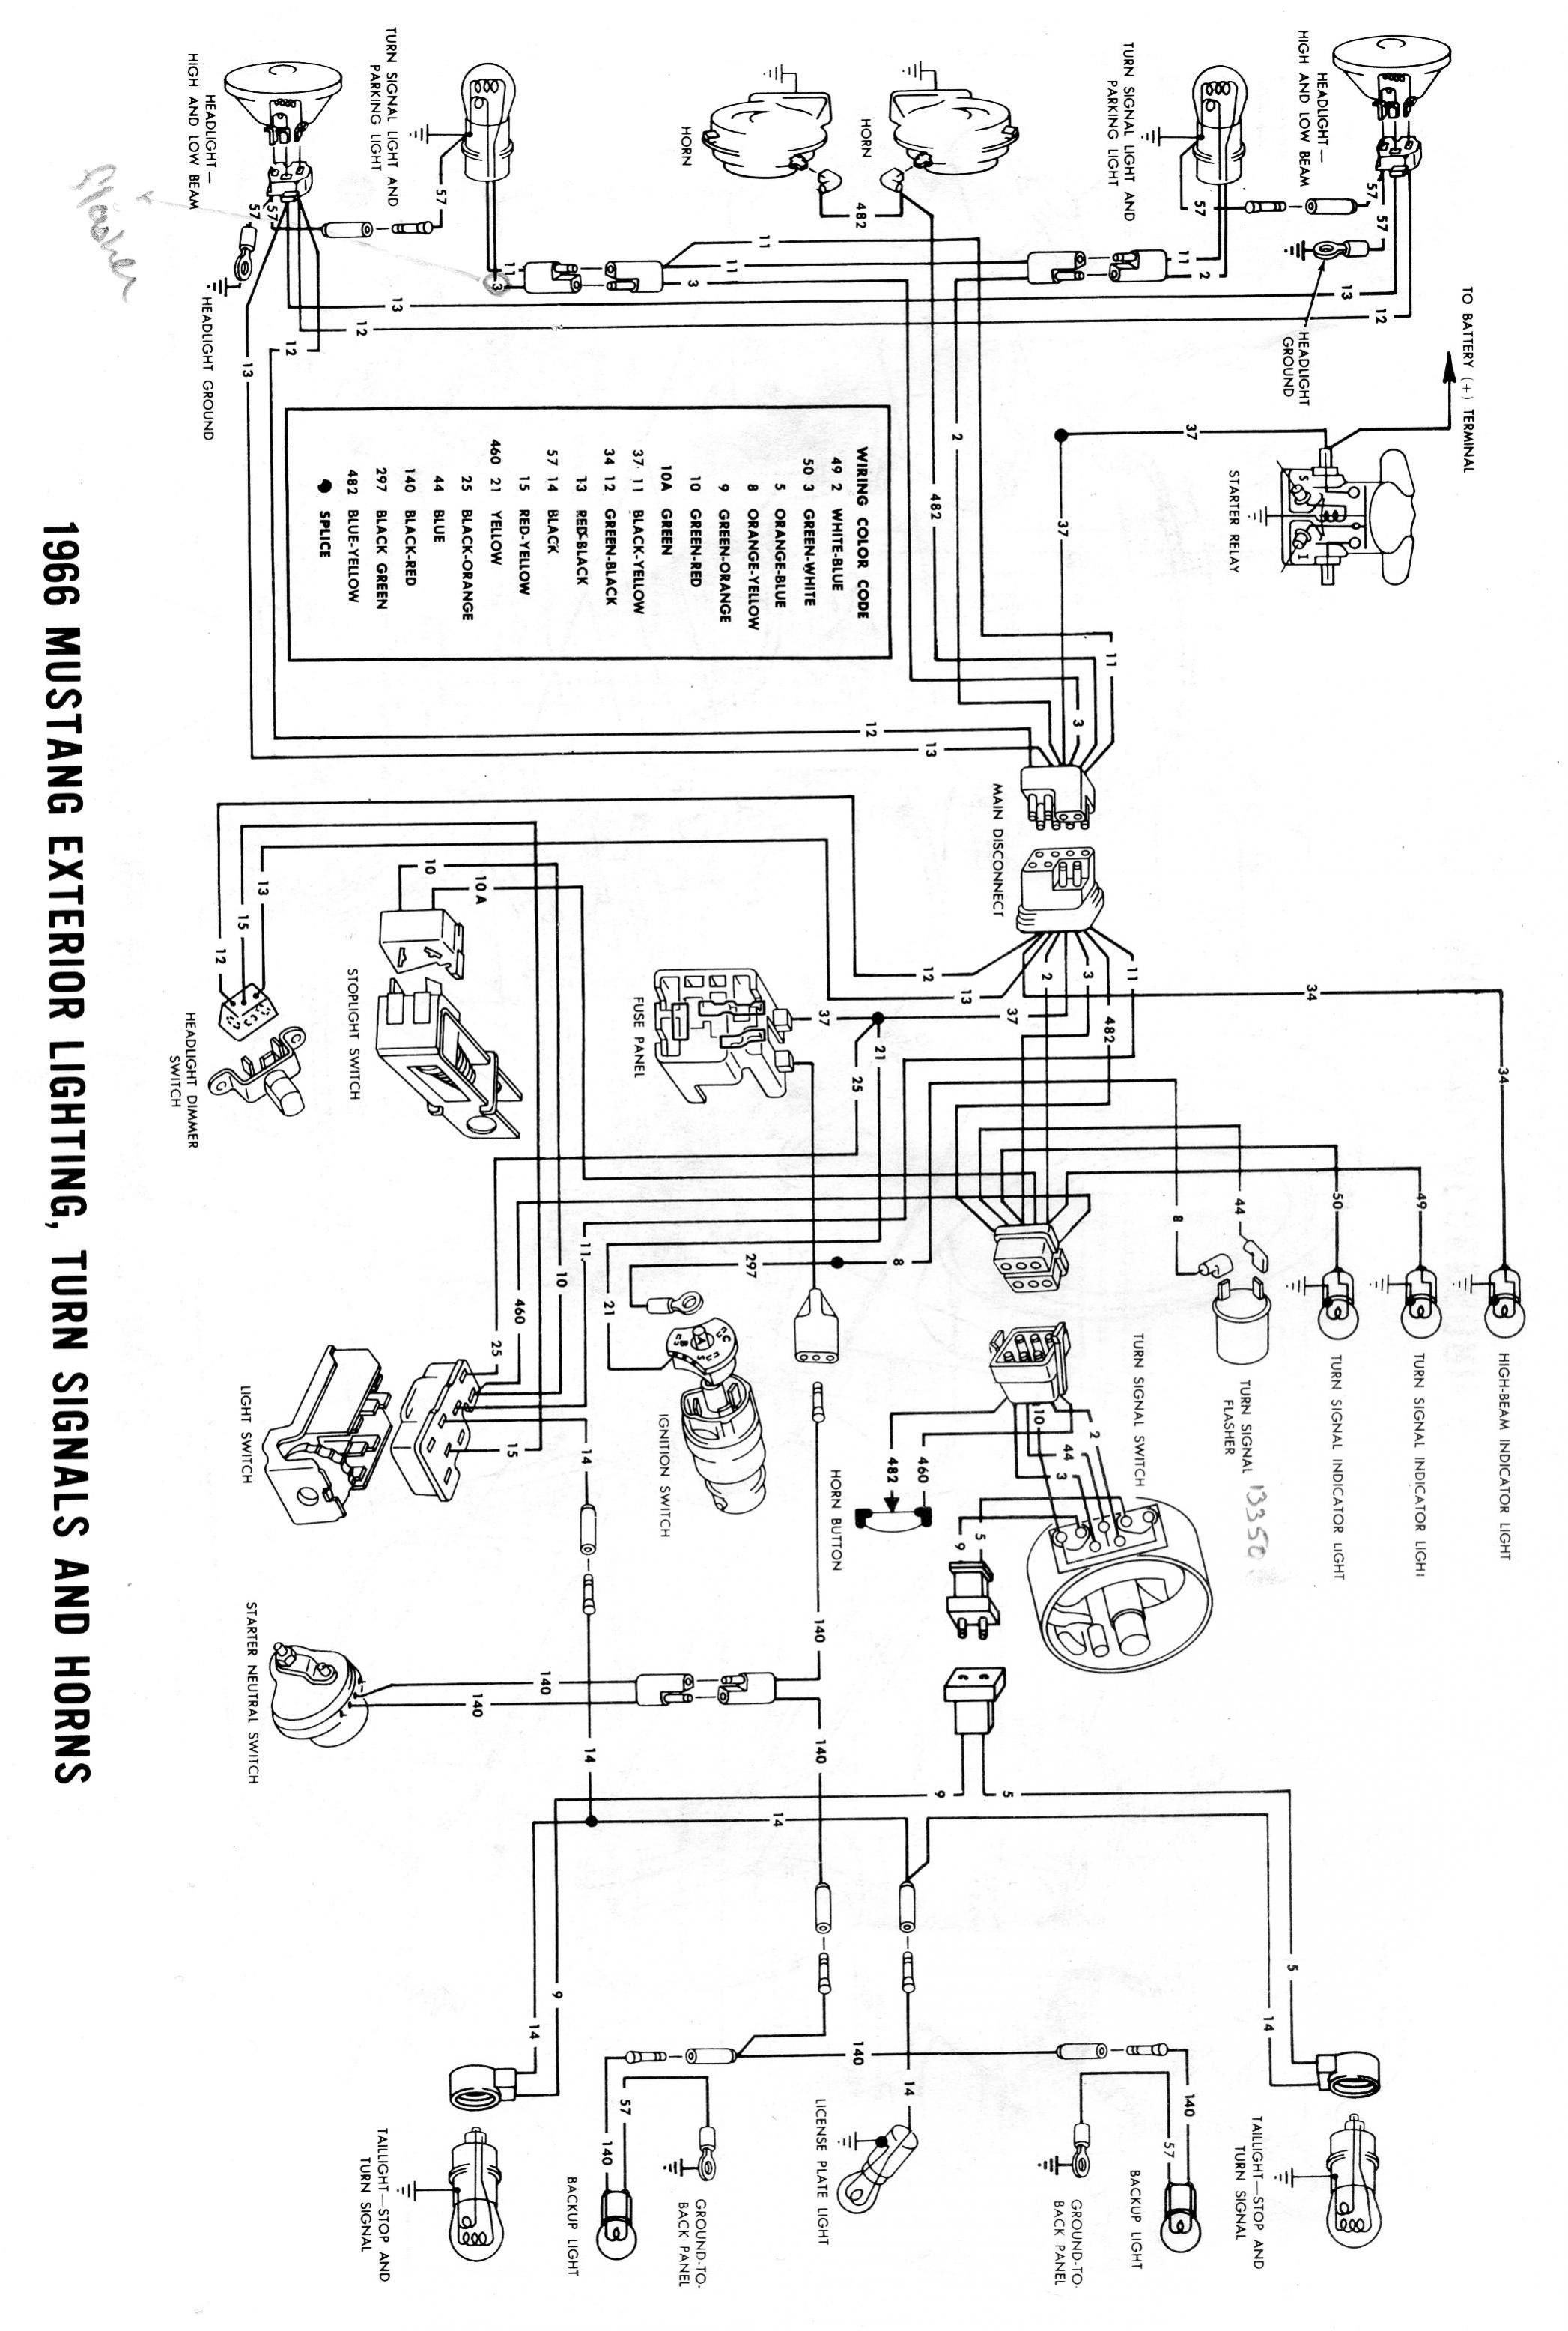 90 ford mustang wiring diagram